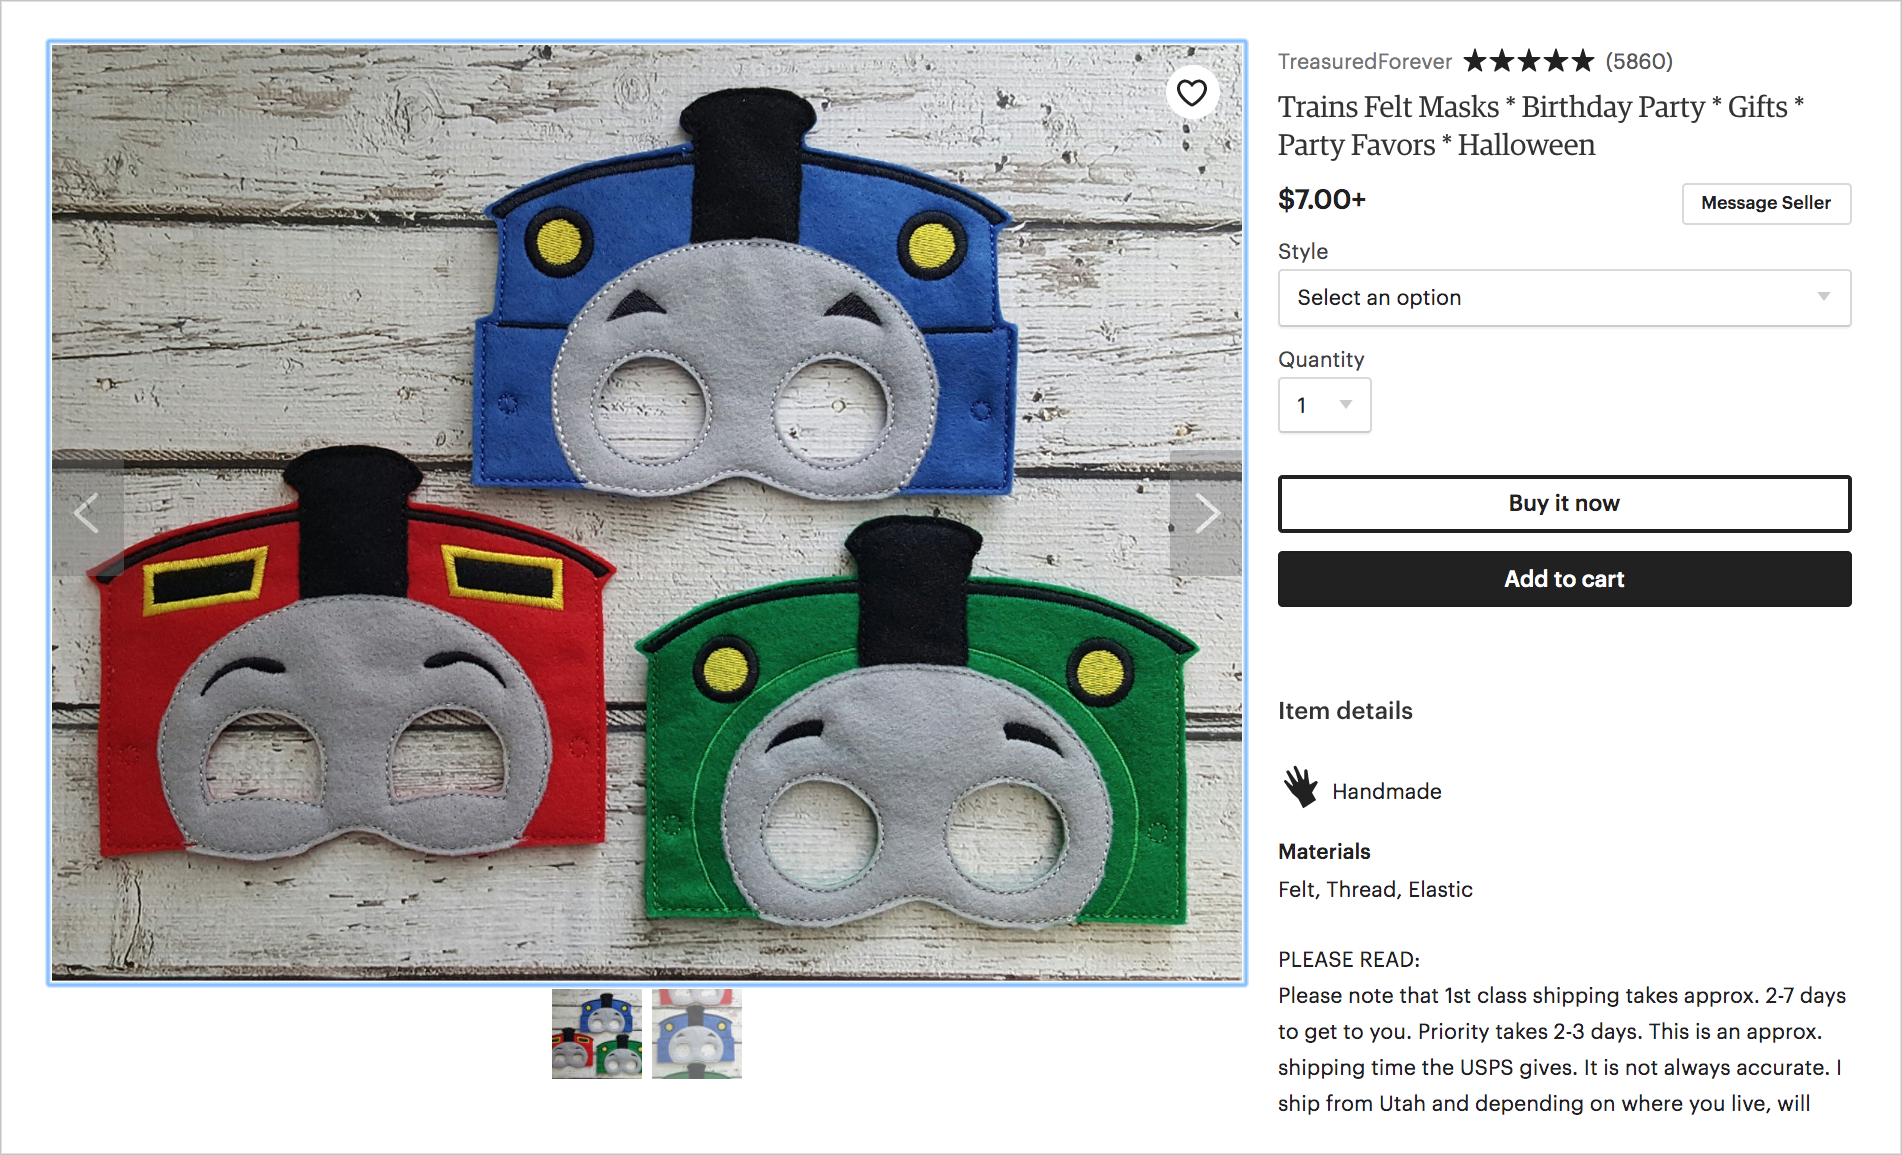 Thomas the Train felt masks